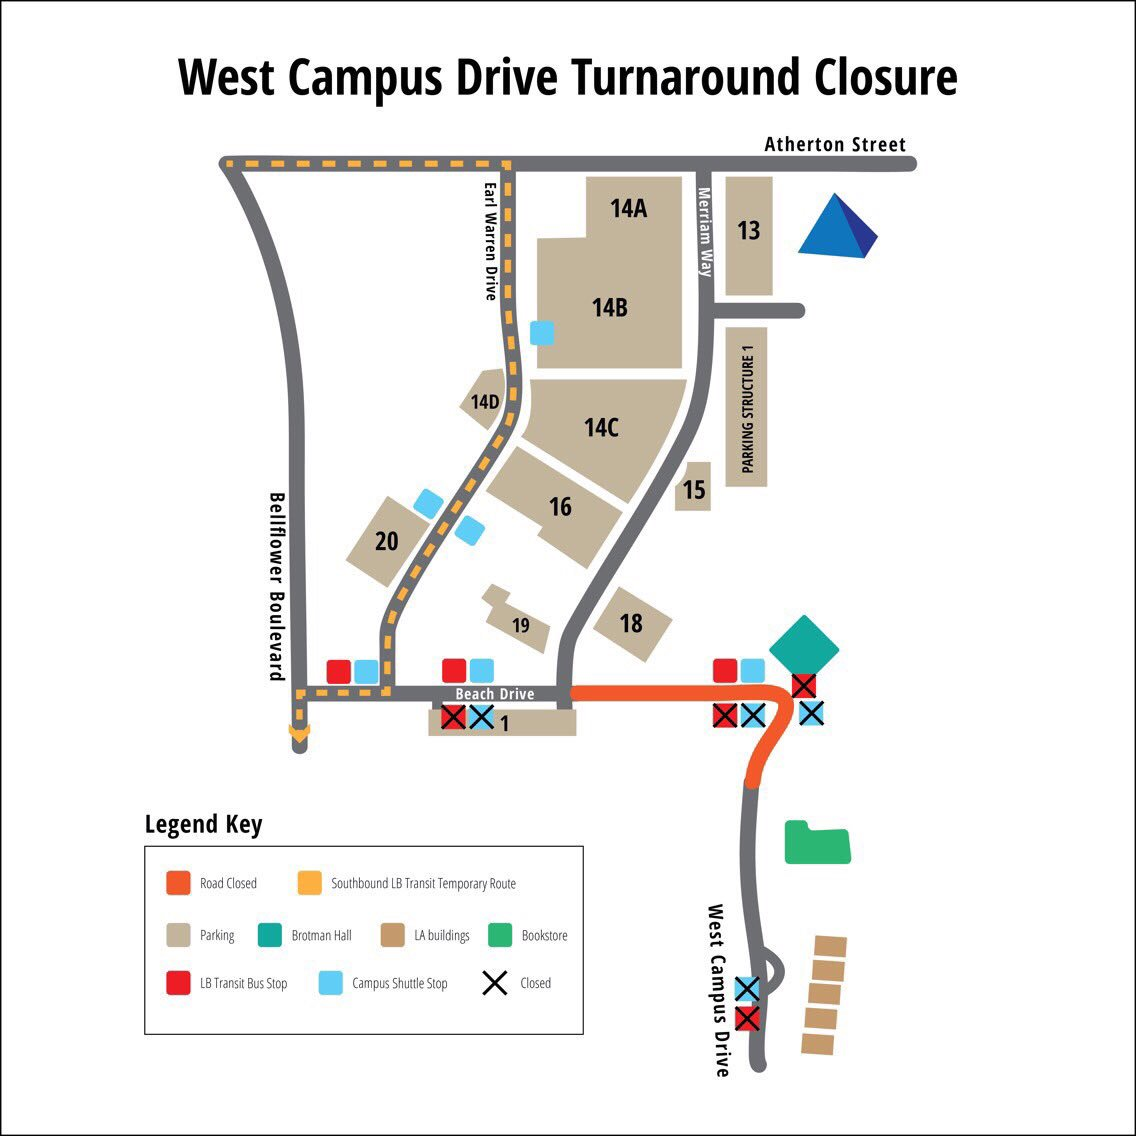 .@CSULB west campus bus detours start today and will last until Nov. 7, 2017.  #CSULB #LongBeach https://t.co/VTKbCaYHlQ